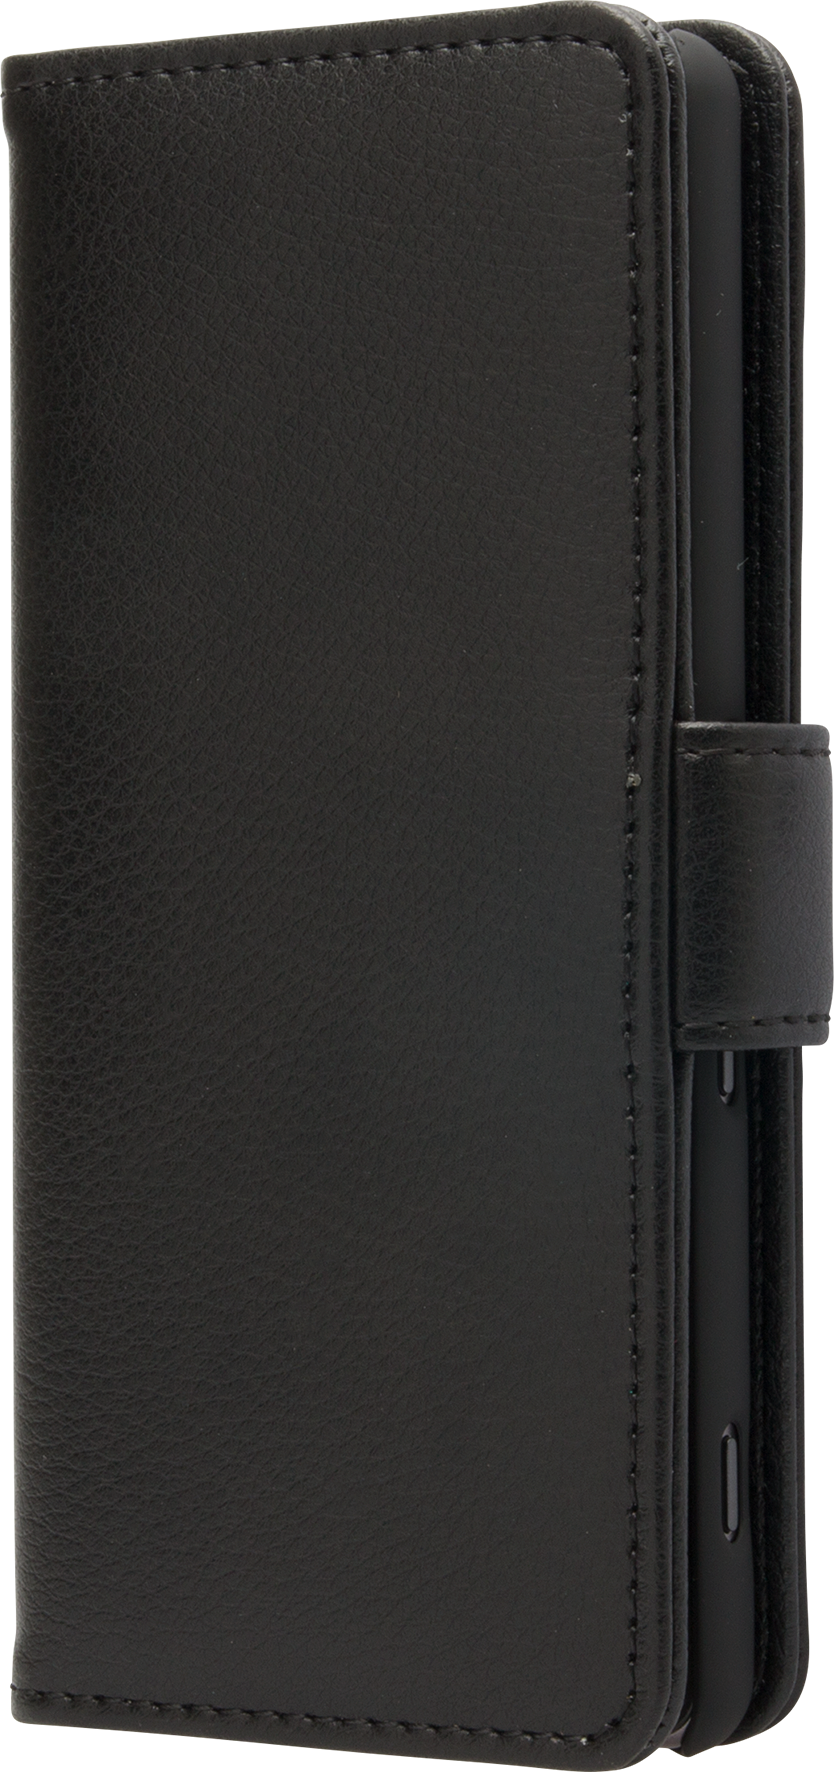 Läs mer om iZound Leather Wallet Case Sony Xperia XA Black